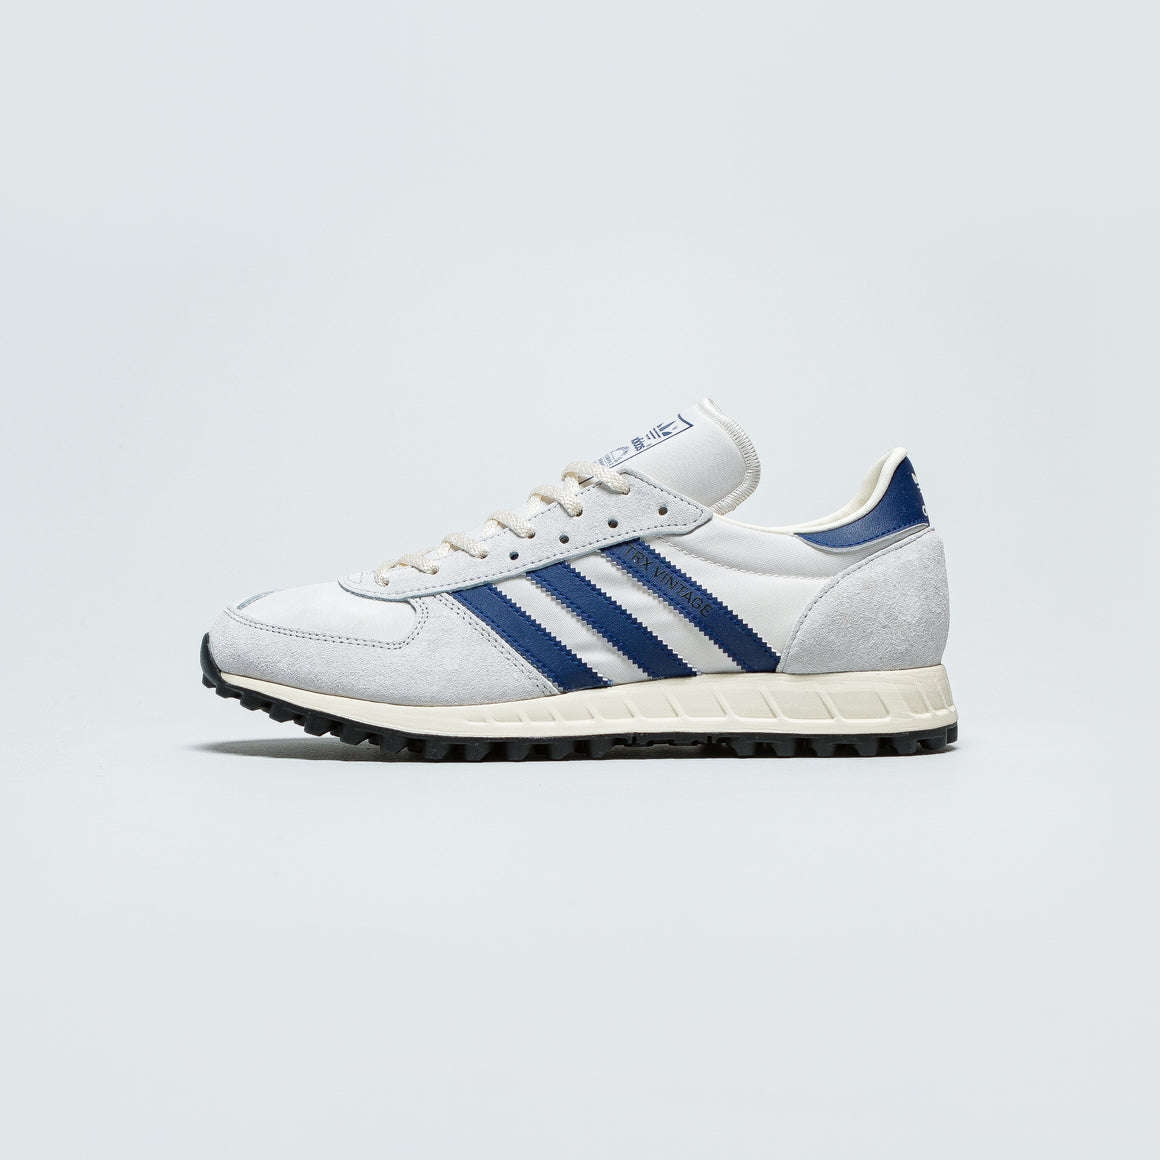 adidas - TRX Vintage - Chalk White/Core Black - Up There